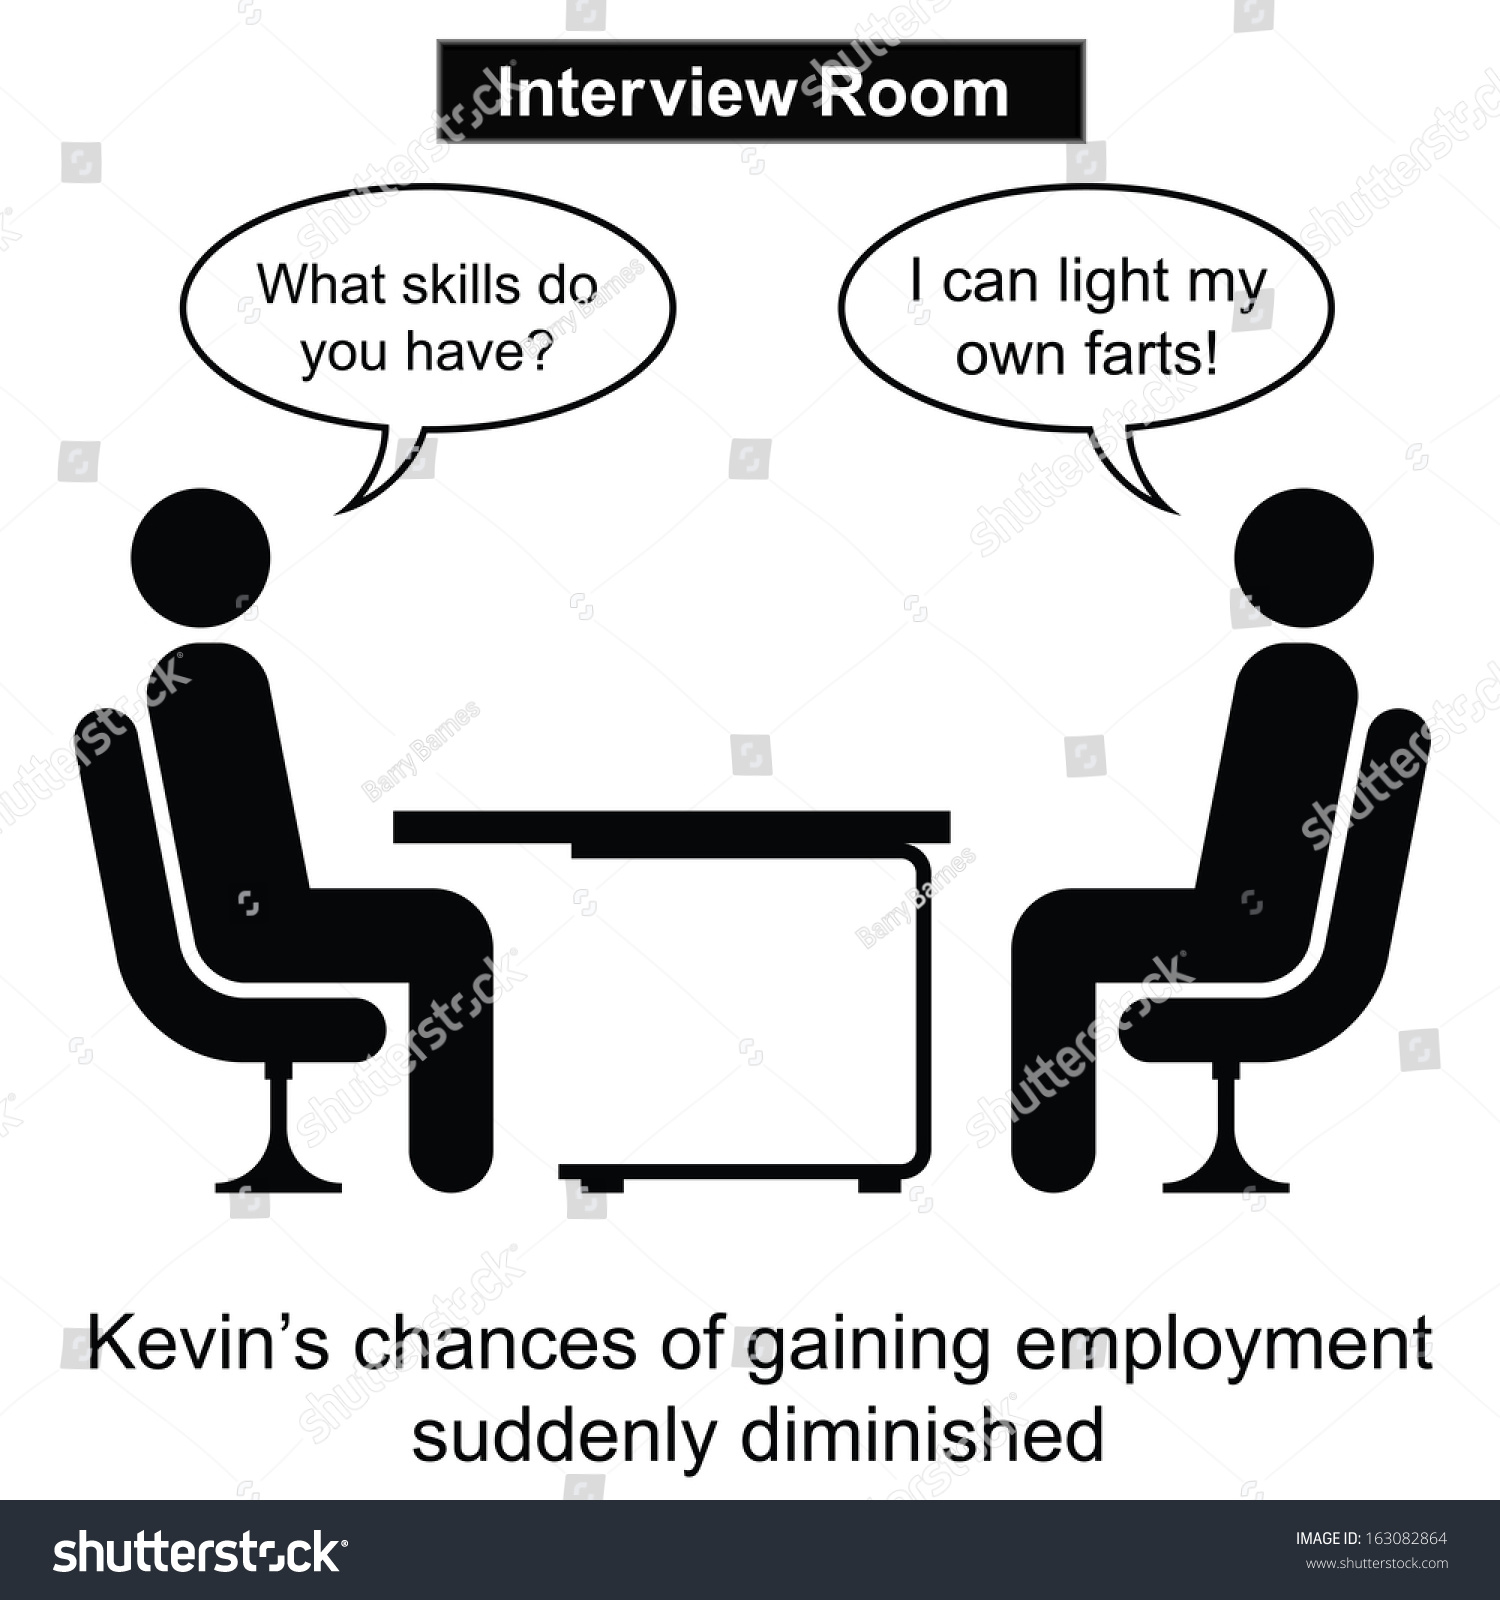 kevin failed yet another job interview stock illustration kevin failed at yet another job interview cartoon isolated on white background